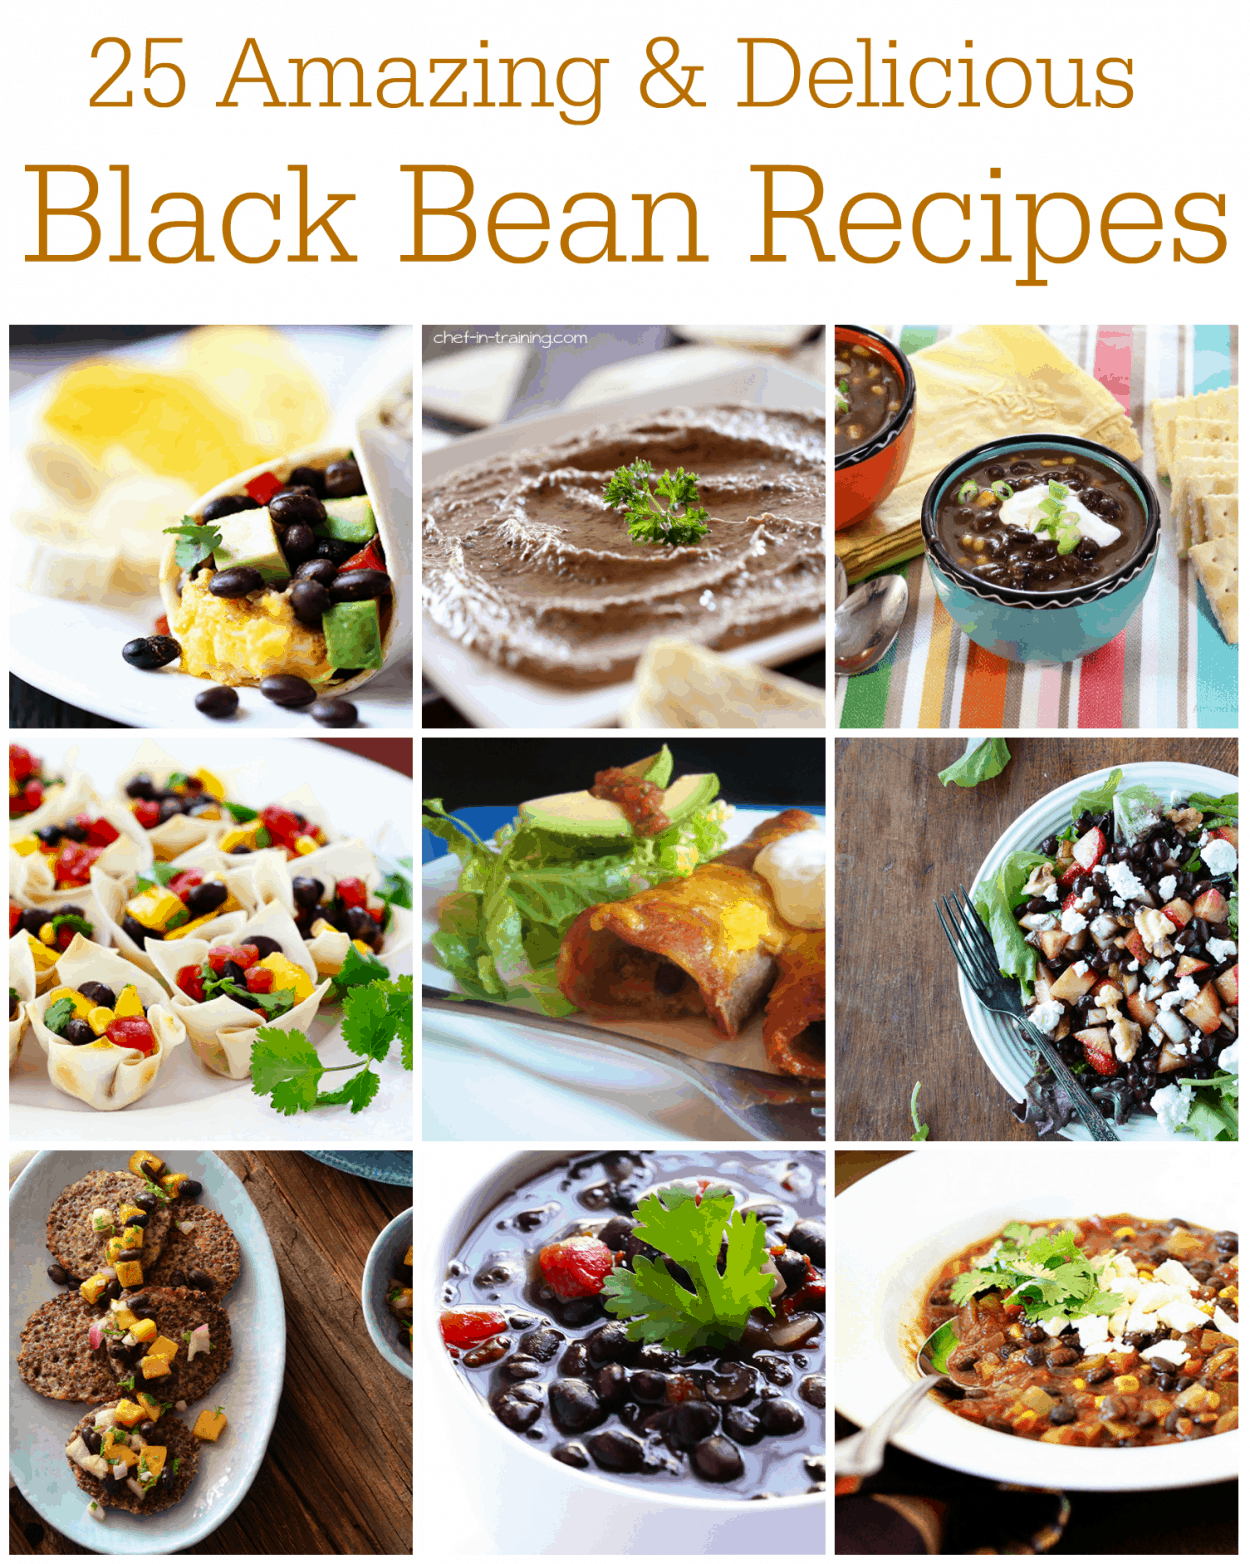 25 Amazing & Delicious Black Bean Recipes